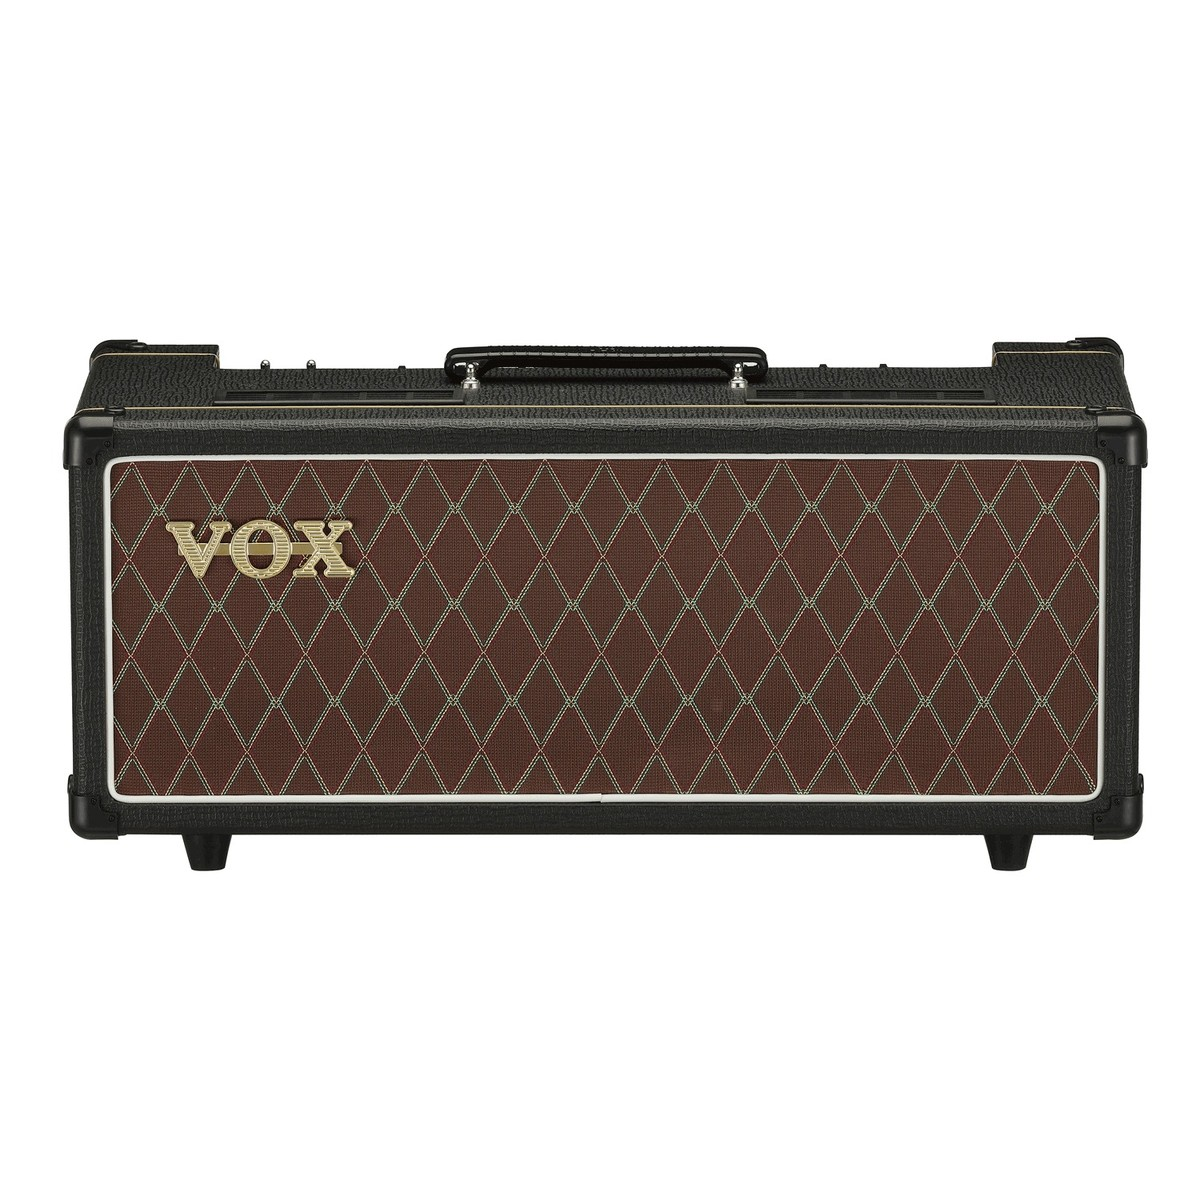 Vox AC15 Custom Amplifier Head at Gear4music.com